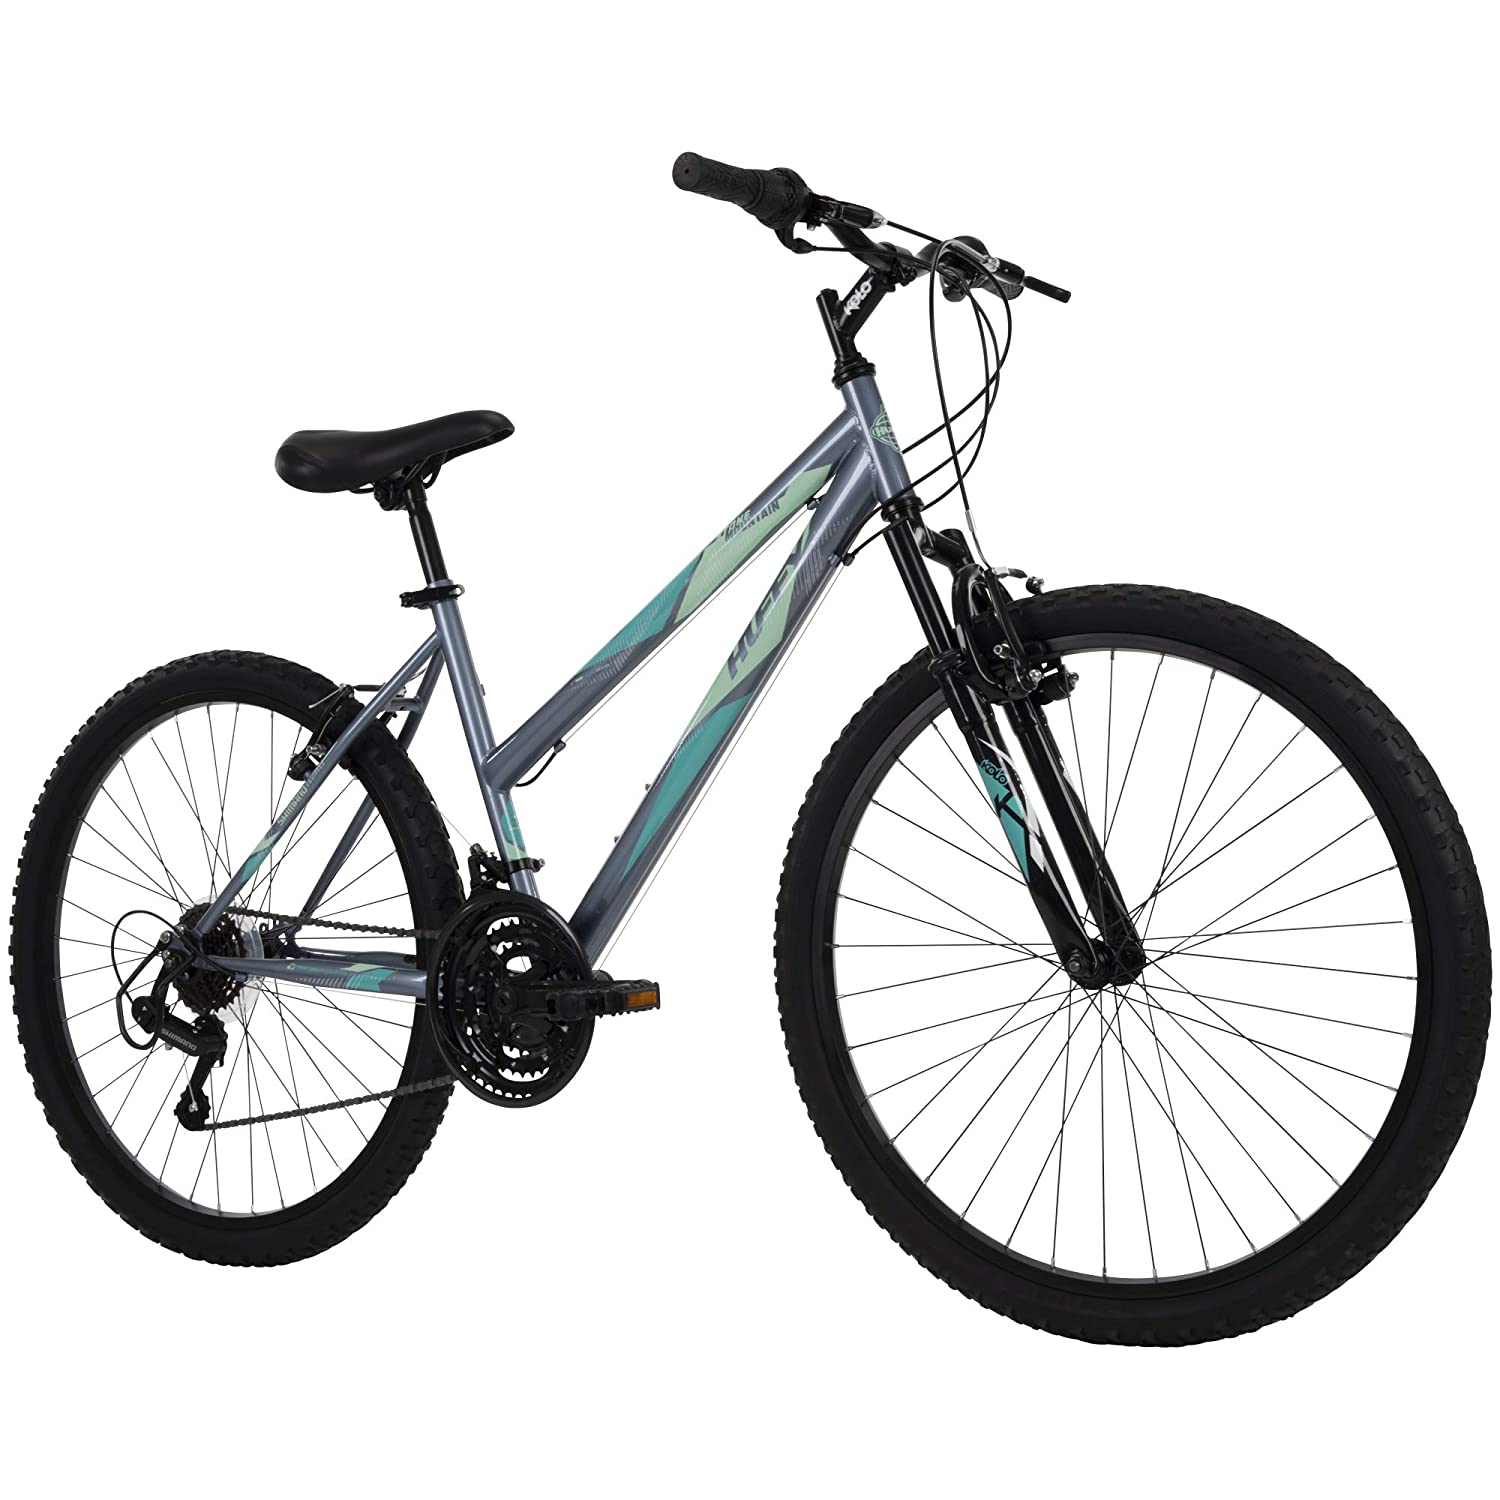 best mountain bike under 500: Huffy Summit Ridge Hardtail Mountain Bike